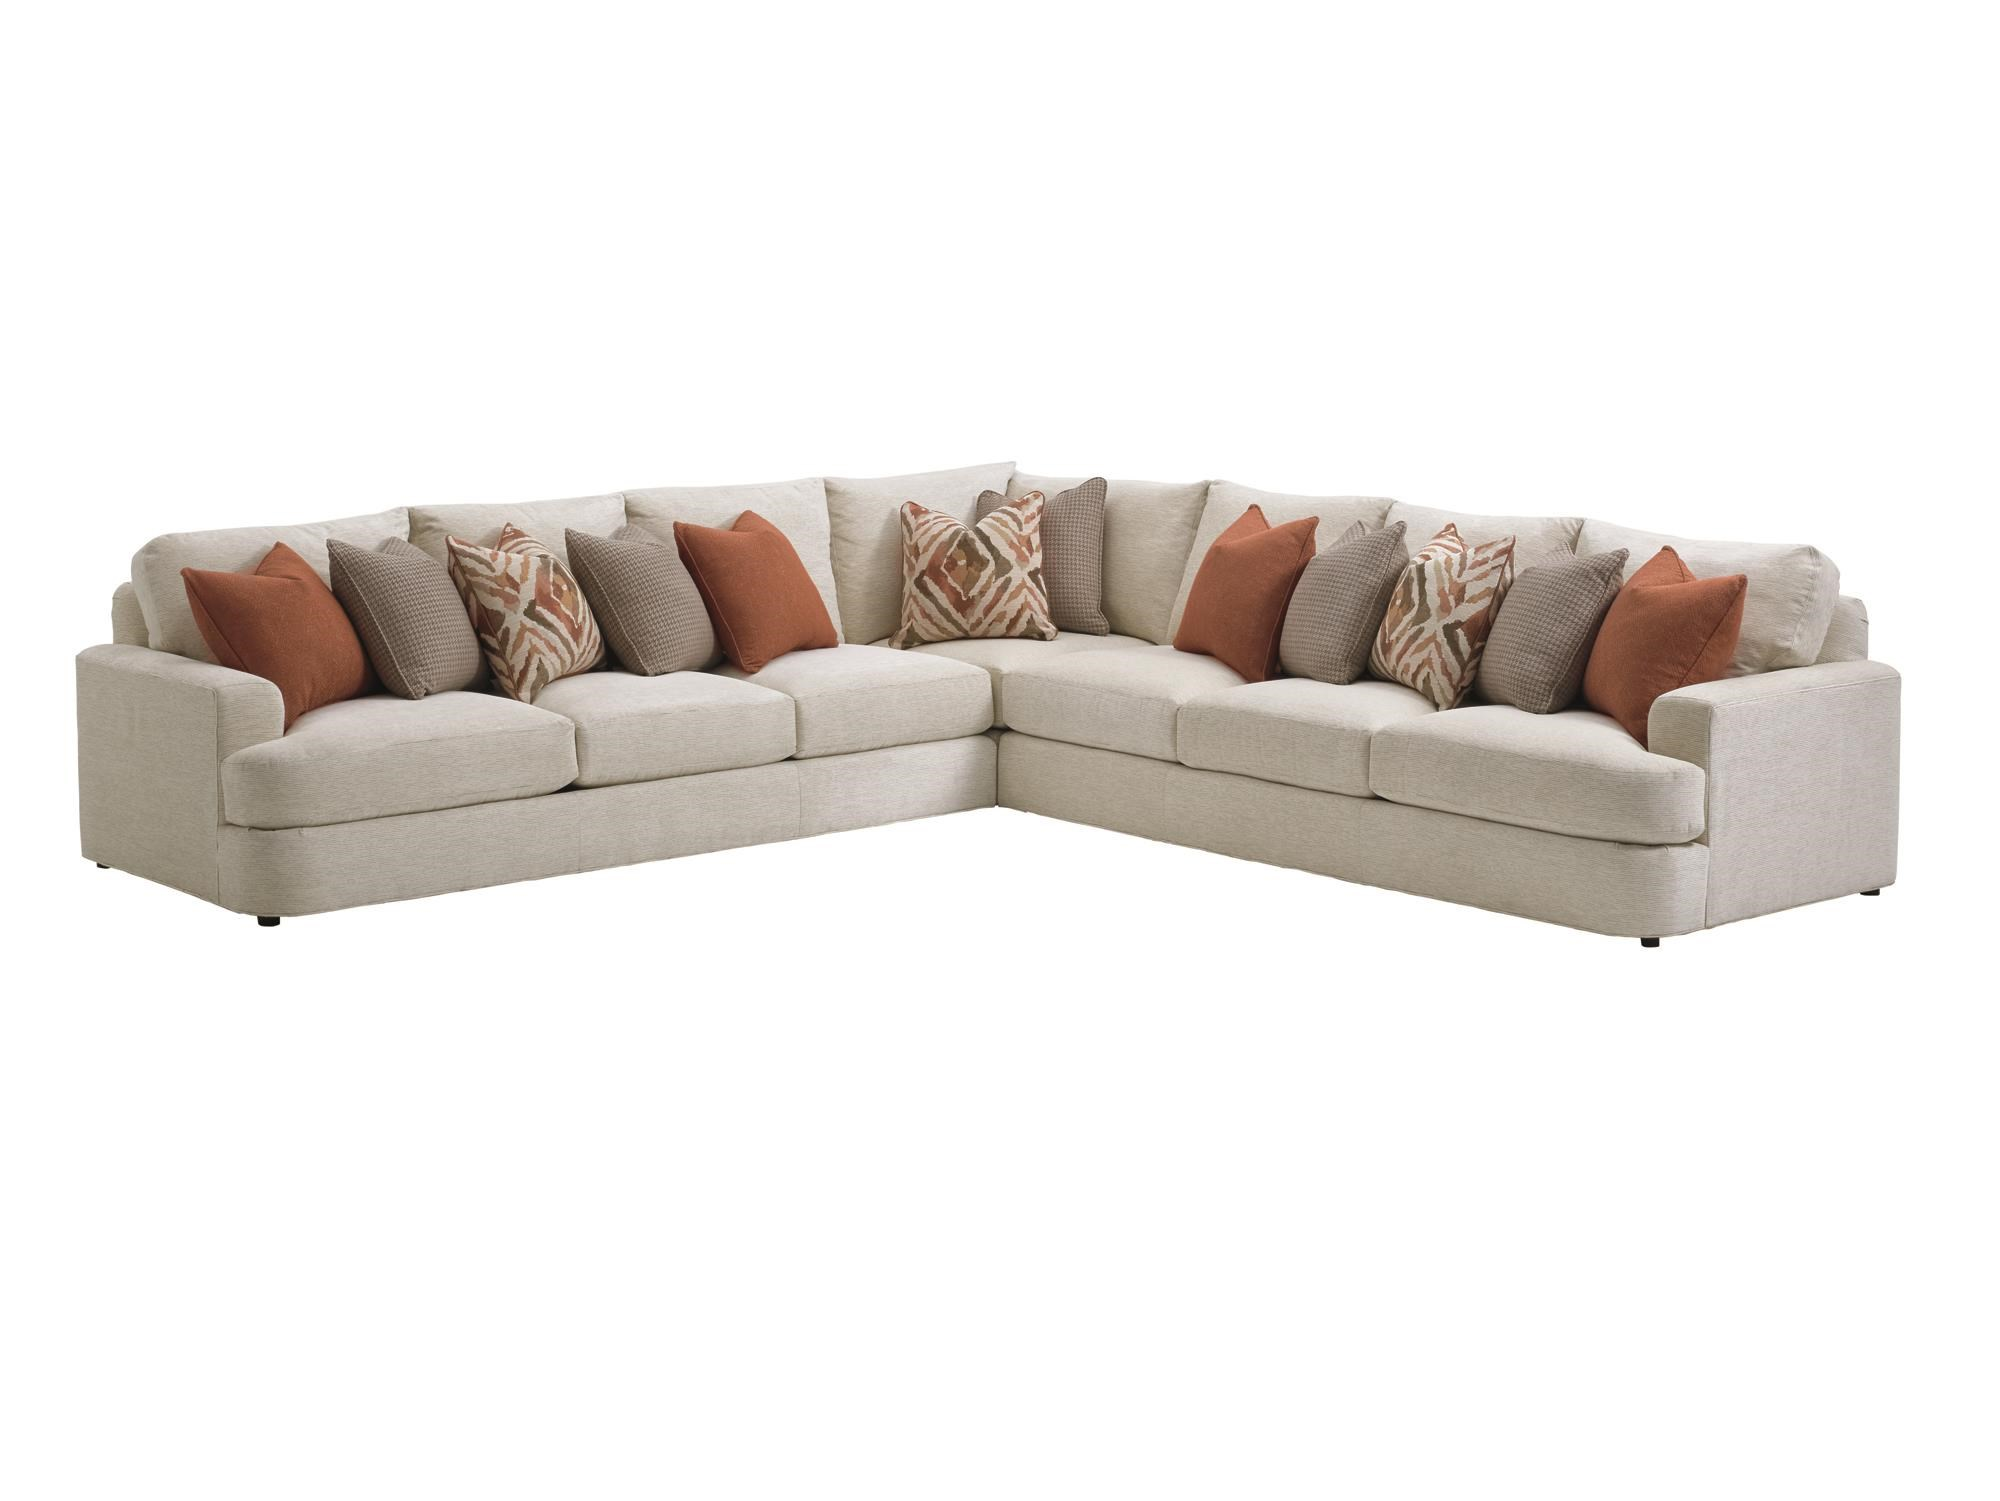 Lexington Laurel Canyon Halandale Three Piece Sectional